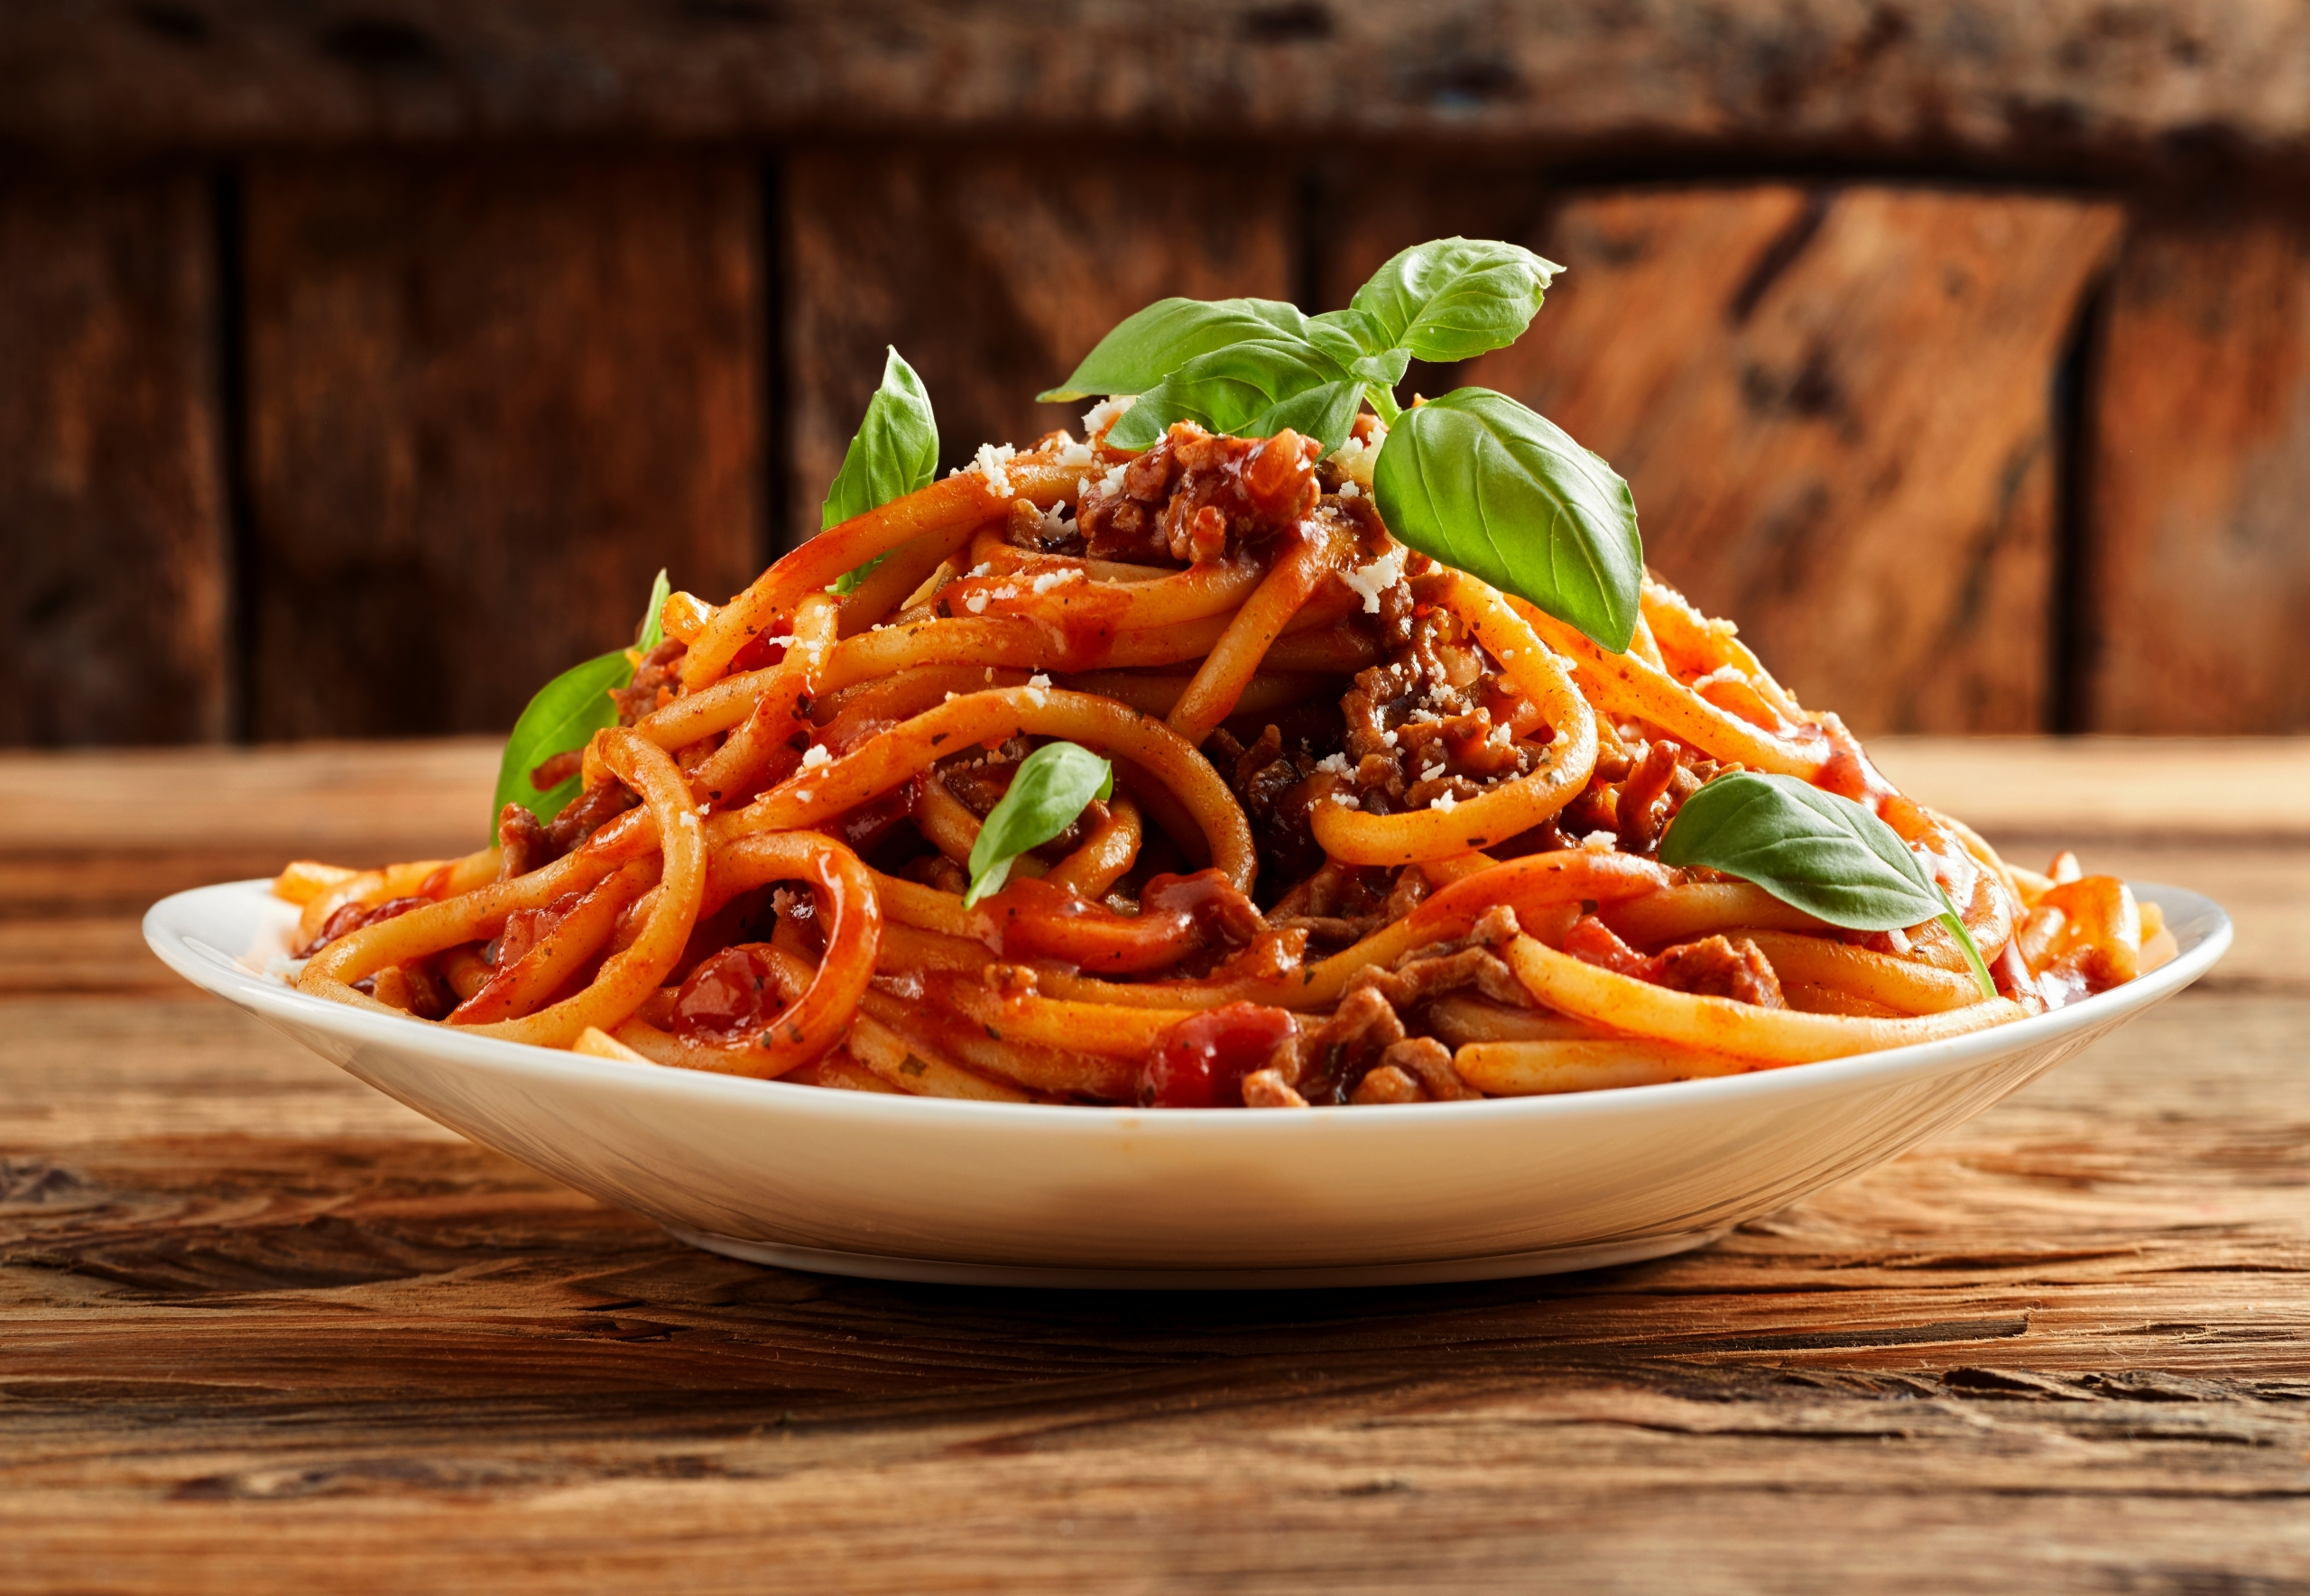 Photo of a plate loaded with spaghetti noodles and sauce garnished with basil leaves